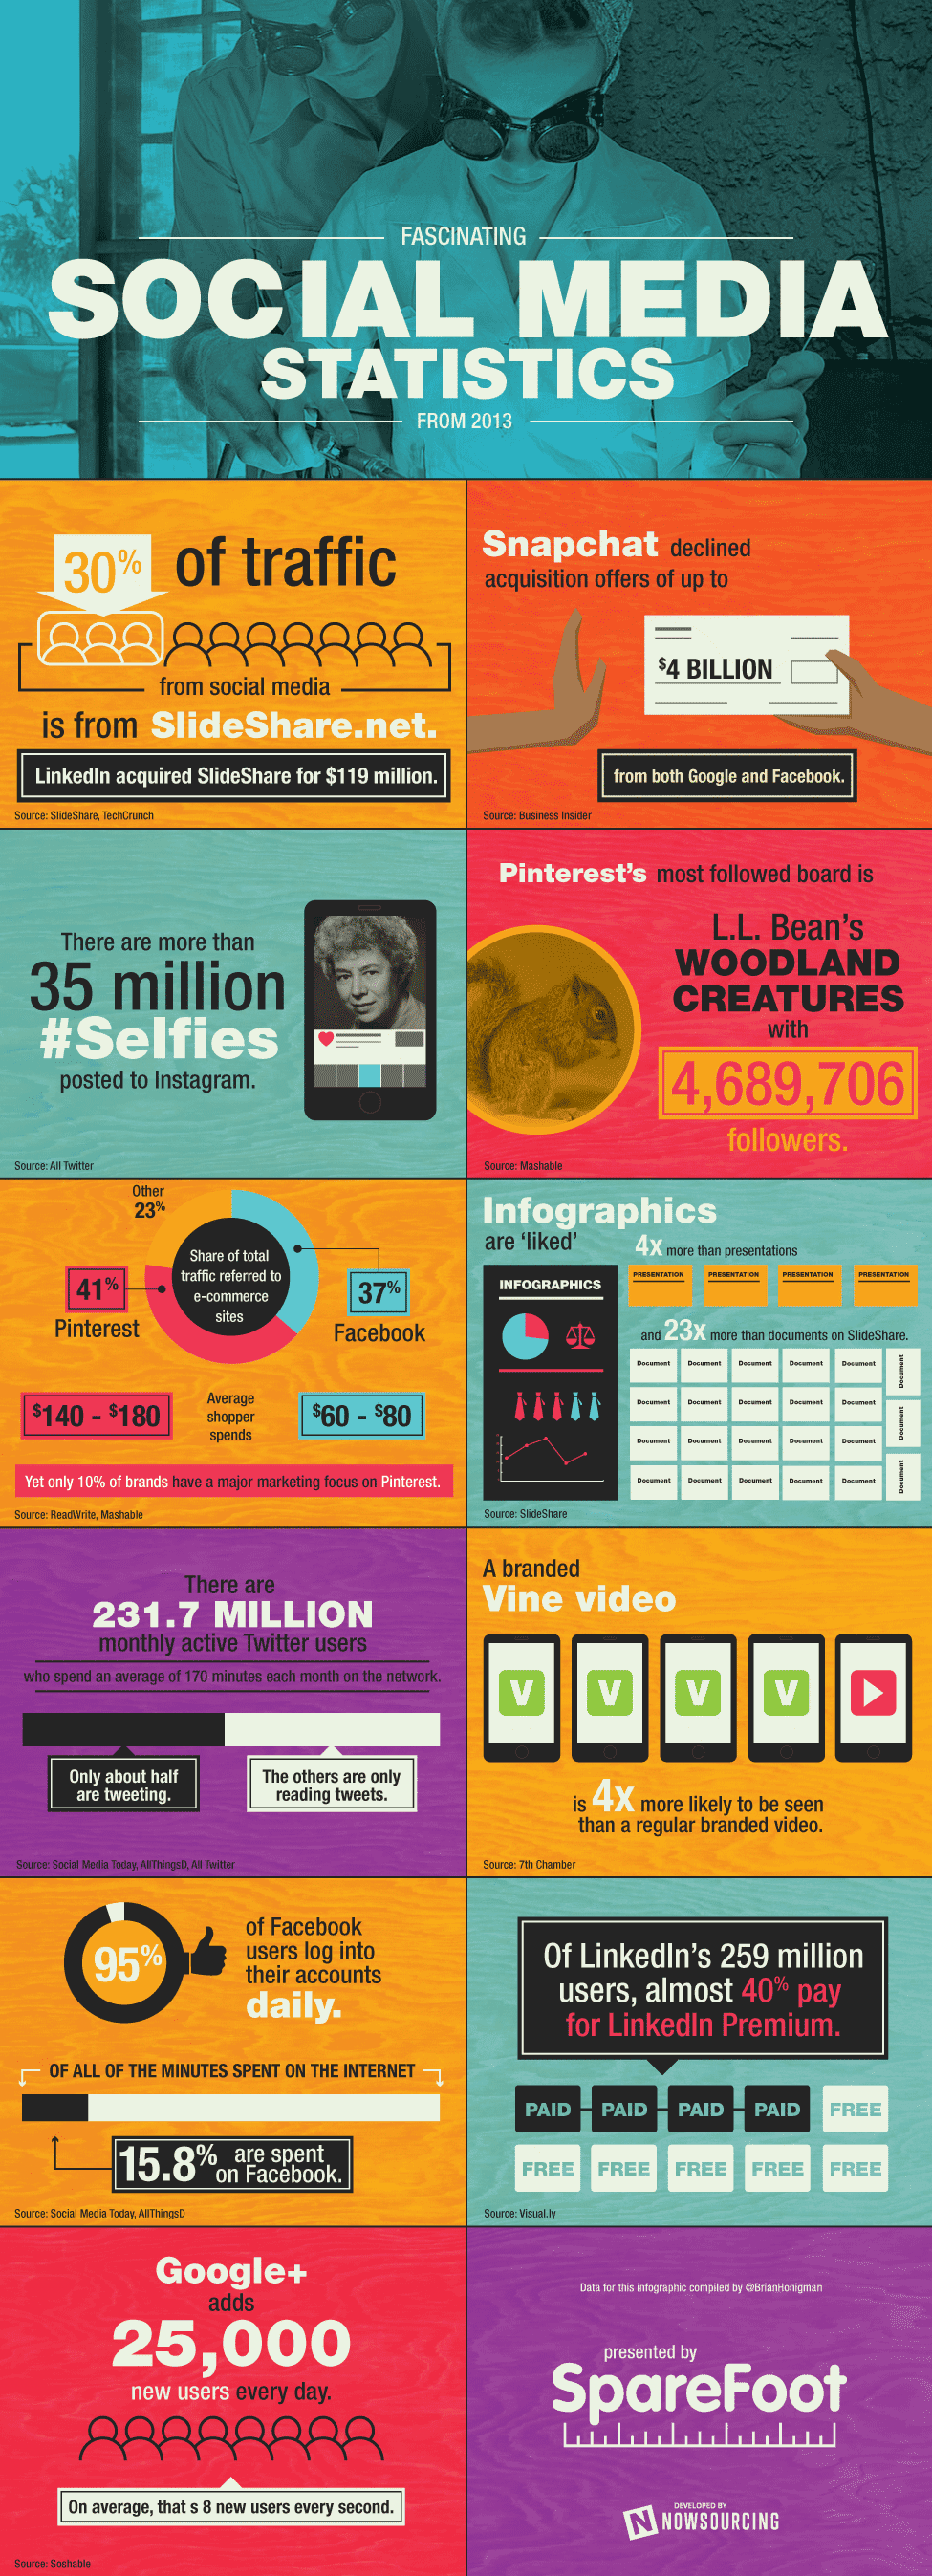 13 Fascinating Social Media Statistics From 2013 [INFOGRAPHIC]